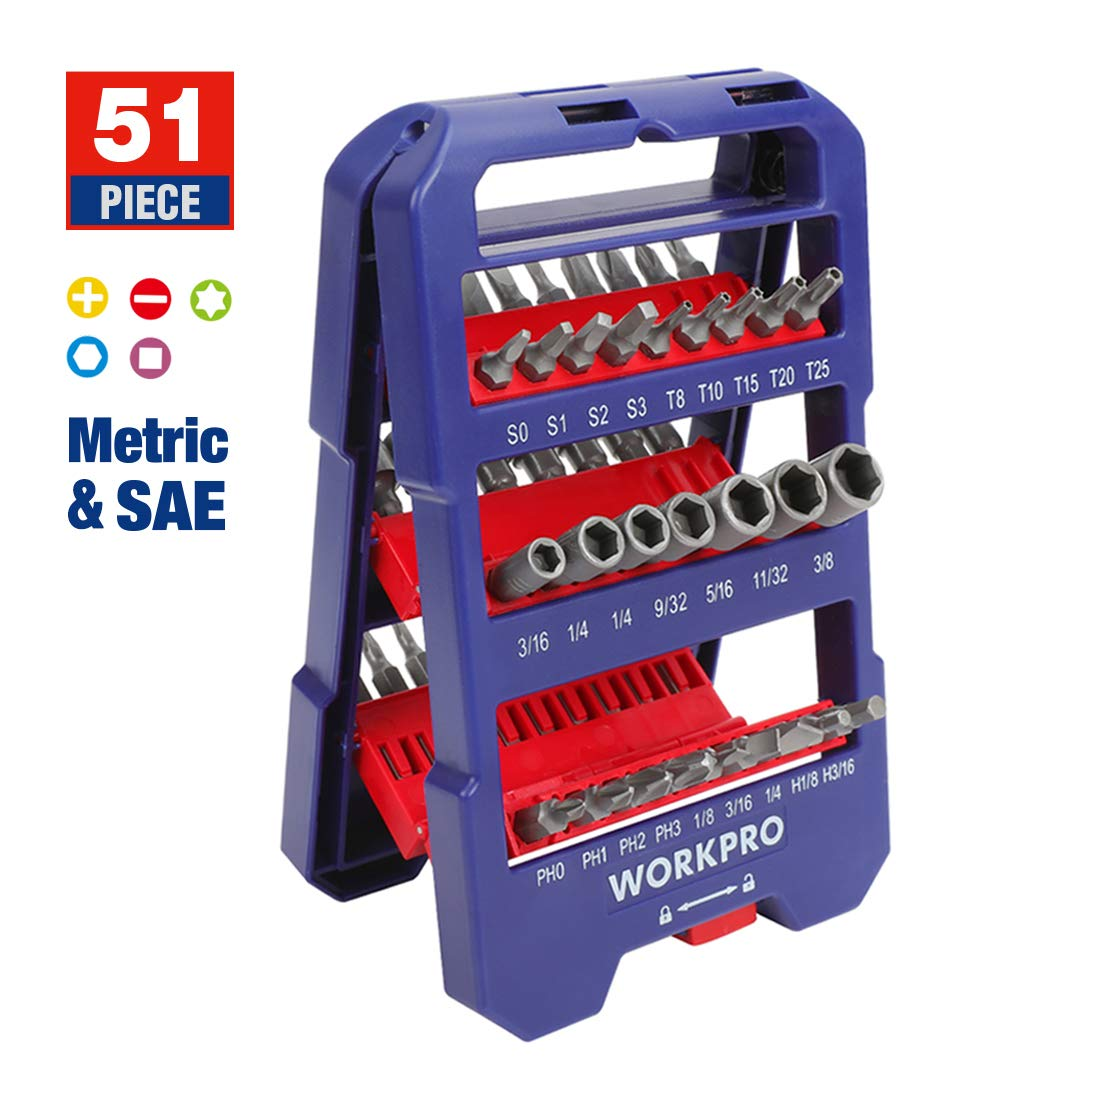 Magnetic Extension Bit Holder WORKPRO 51-Piece Screwdriver Bits Set with Slotted Phillips Torx Hex Bits Nut Driver Screw Bits in Auto-Opening Tool Kit for Any Brand Electric Screwdriver